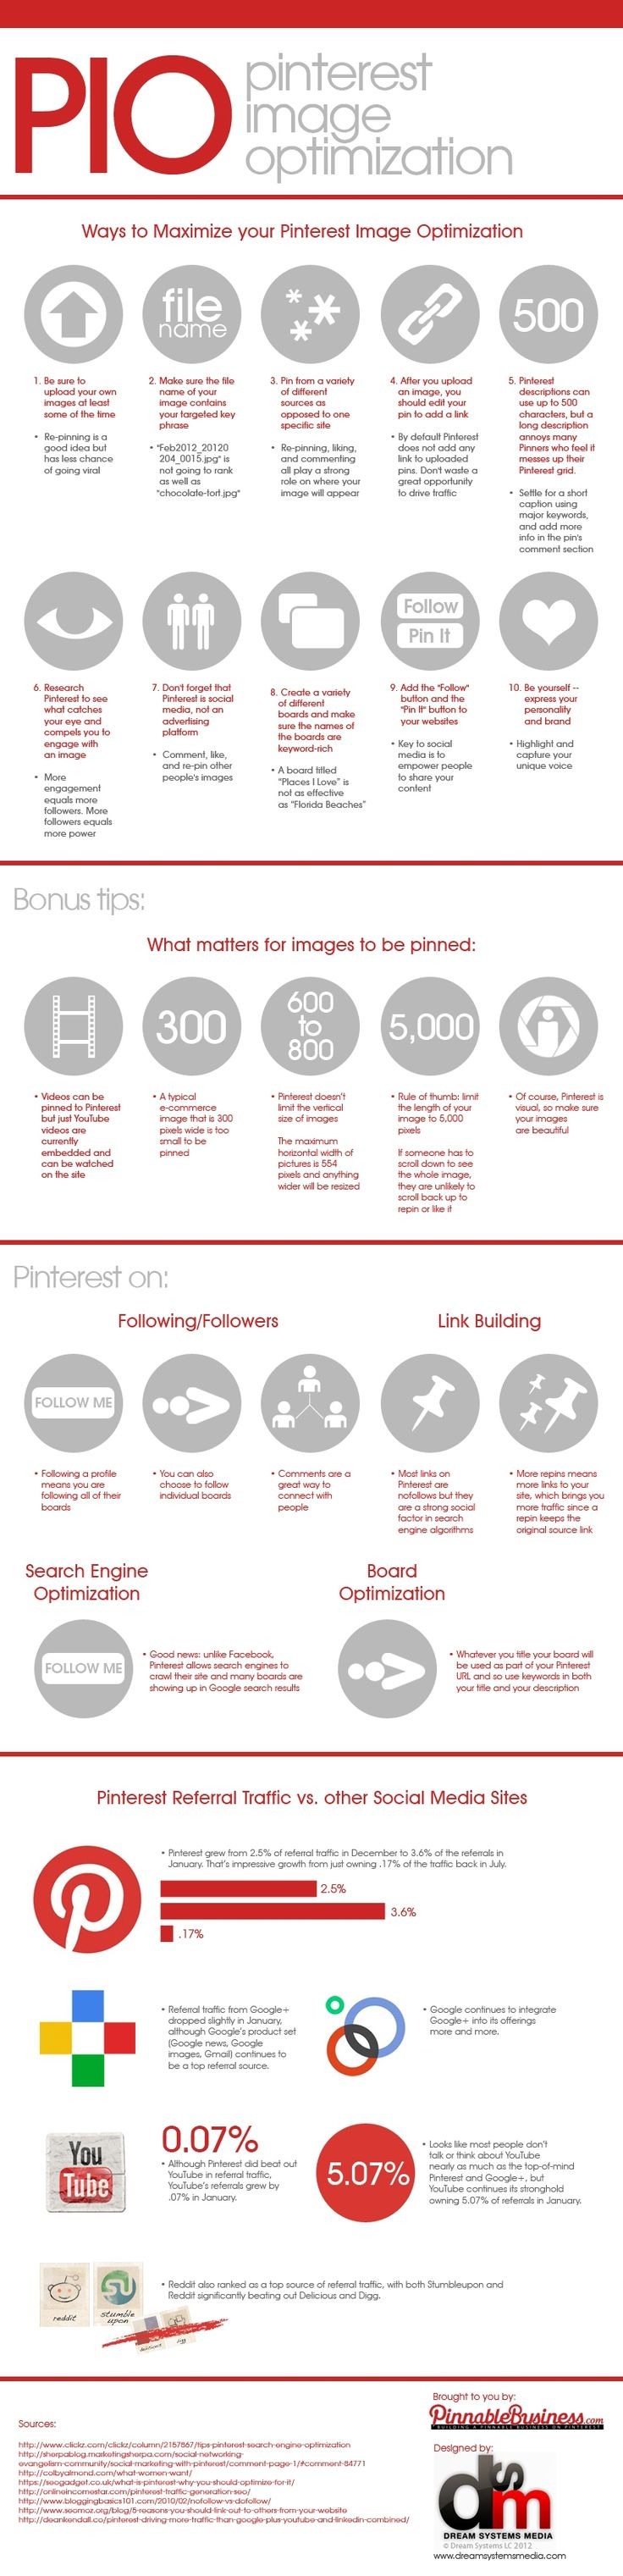 pinterest image optimization.  How to make your images stand out on pinterest.  Pinterest business.